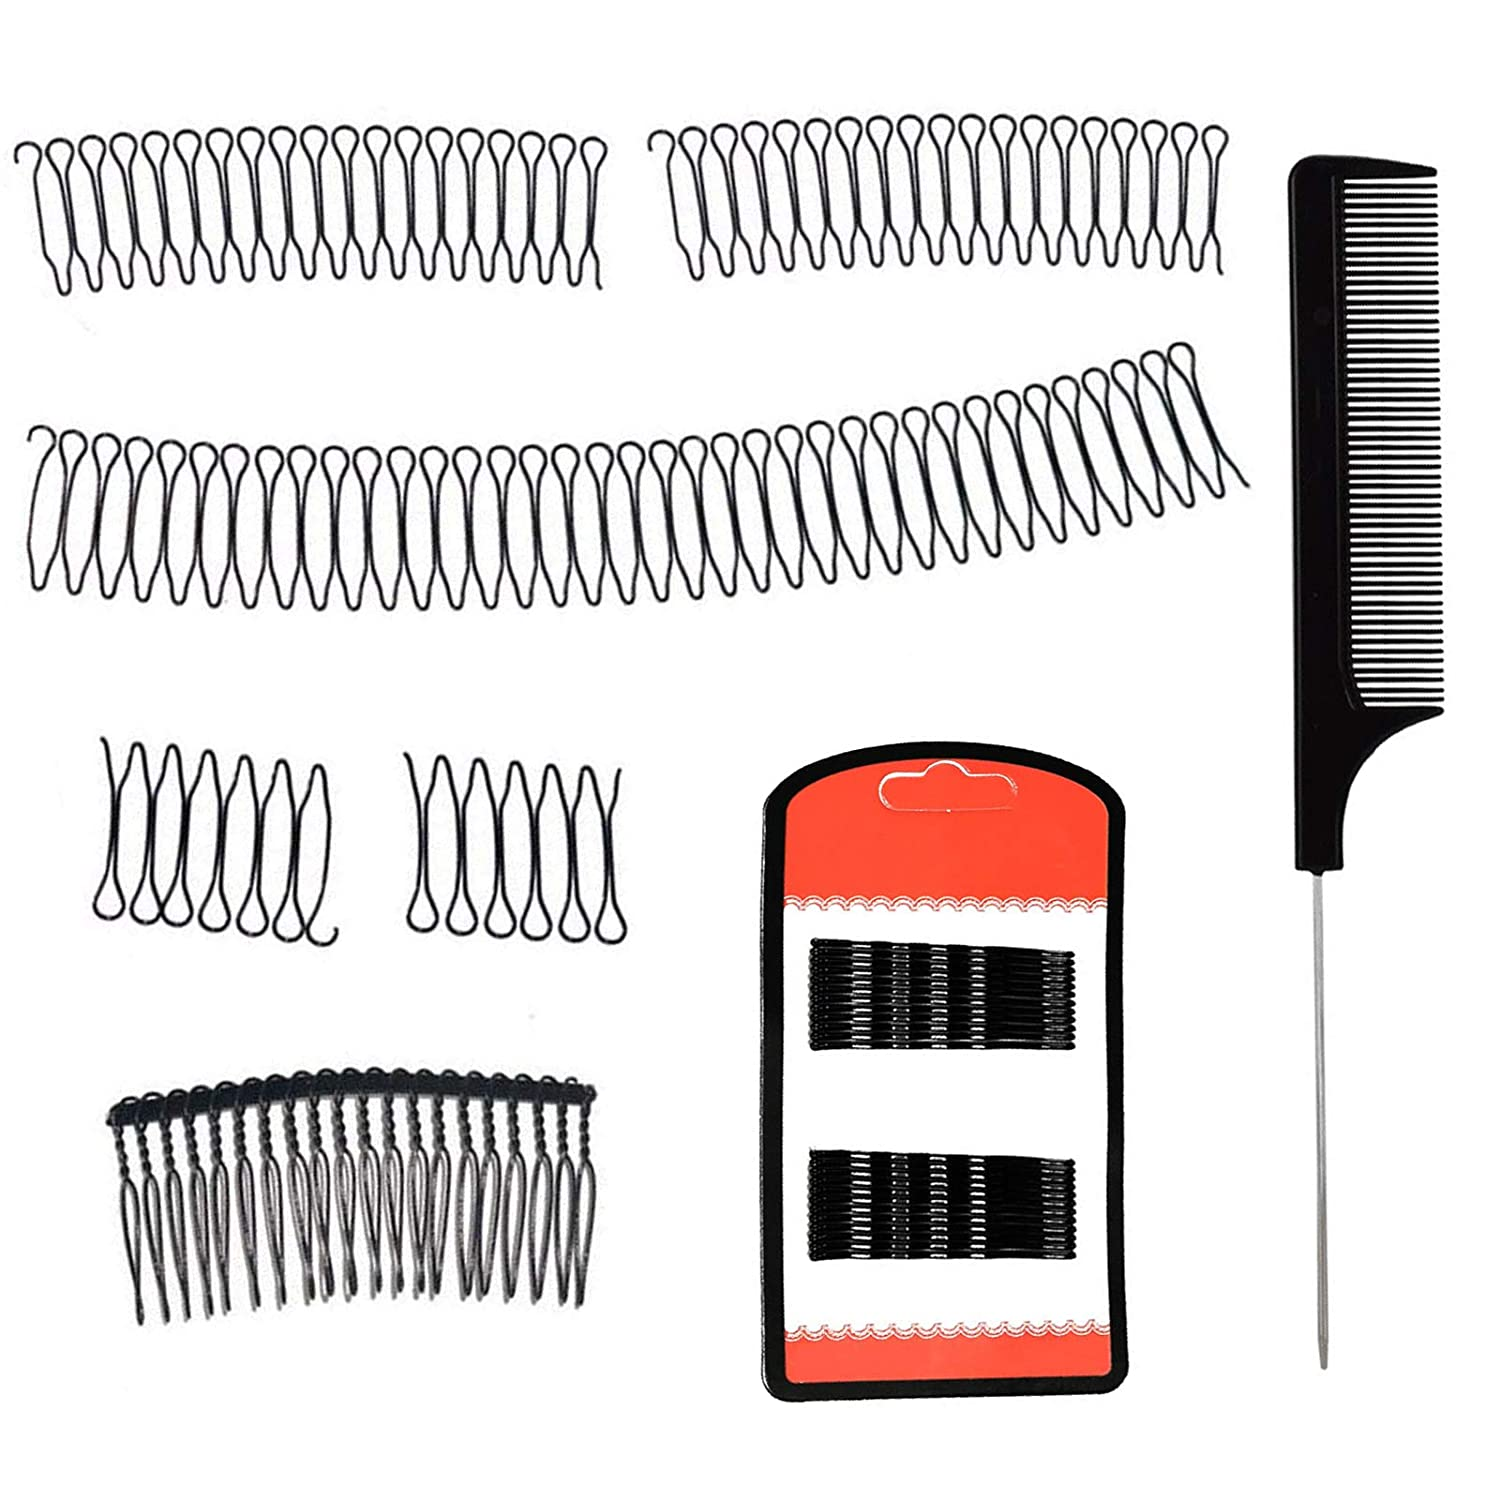 DKAF 8 Pcs U Shape Hair At the price of surprise Tail with Max 46% OFF Rat Finishing Comb Fixer